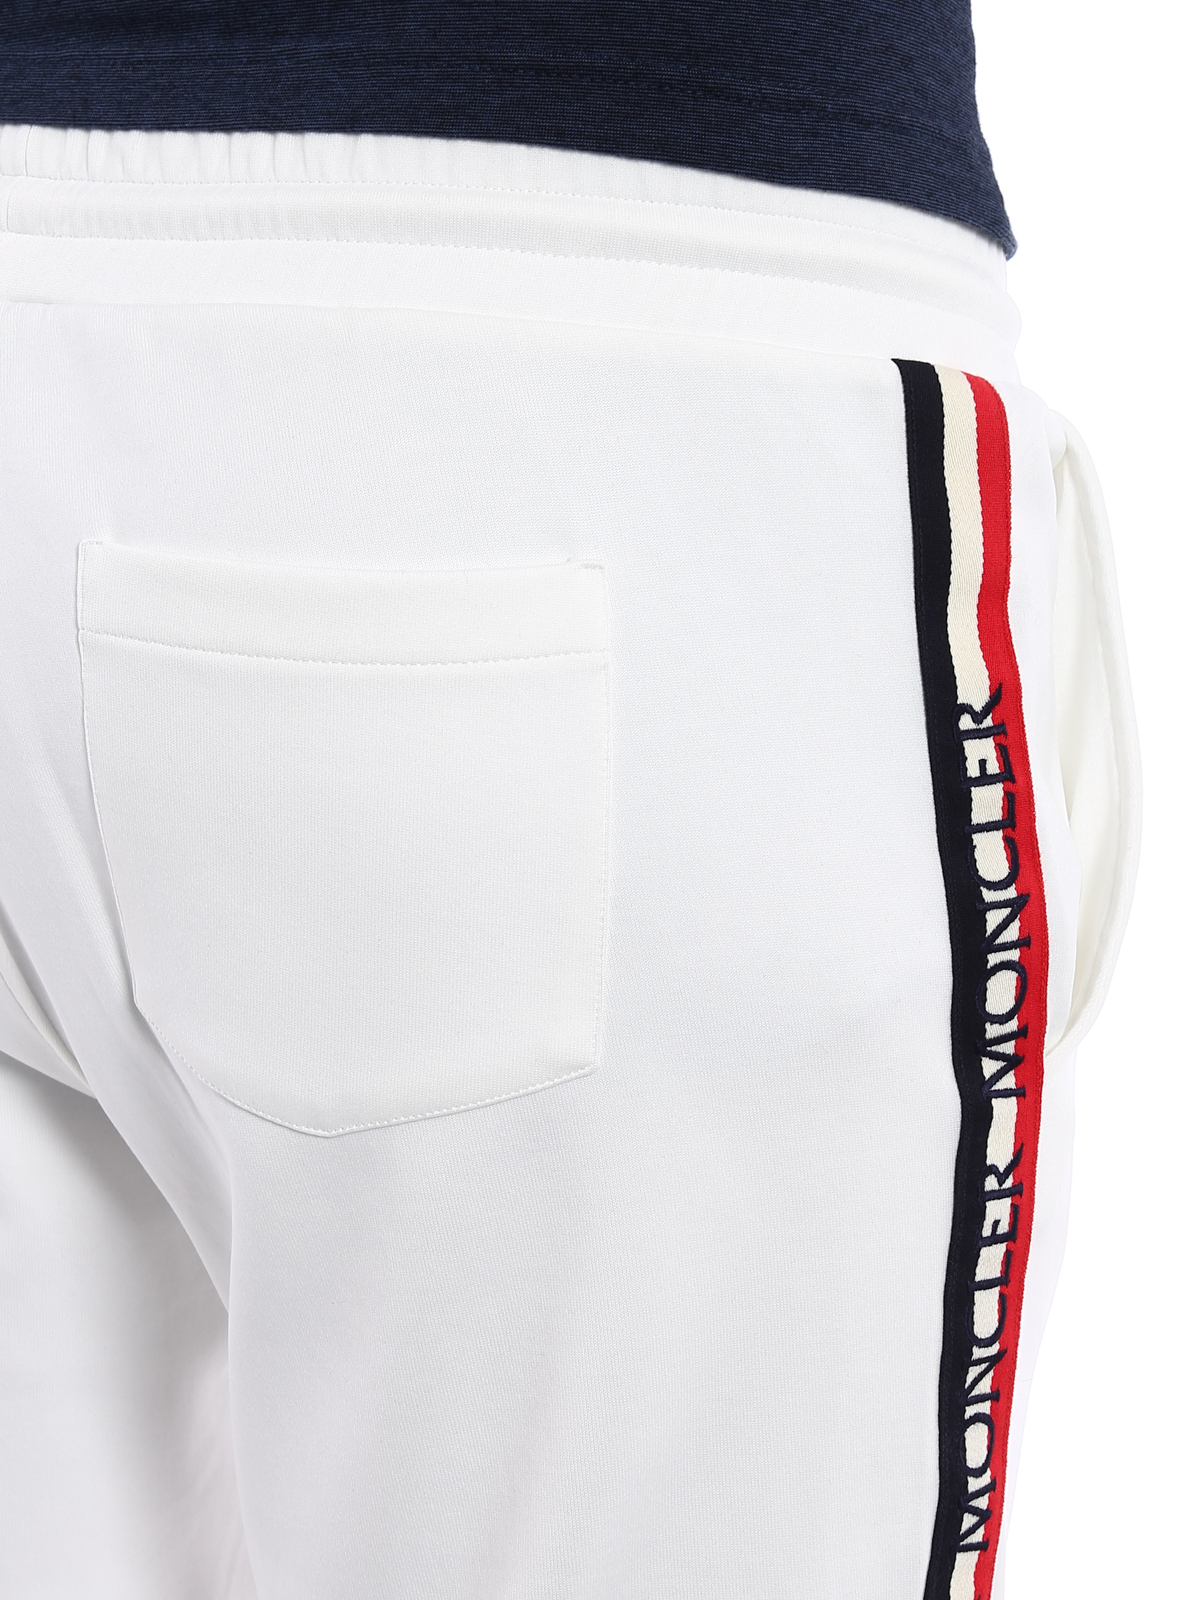 ff4bc7a6c02839 Moncler - Logo band detail white track pants - tracksuit bottoms ...